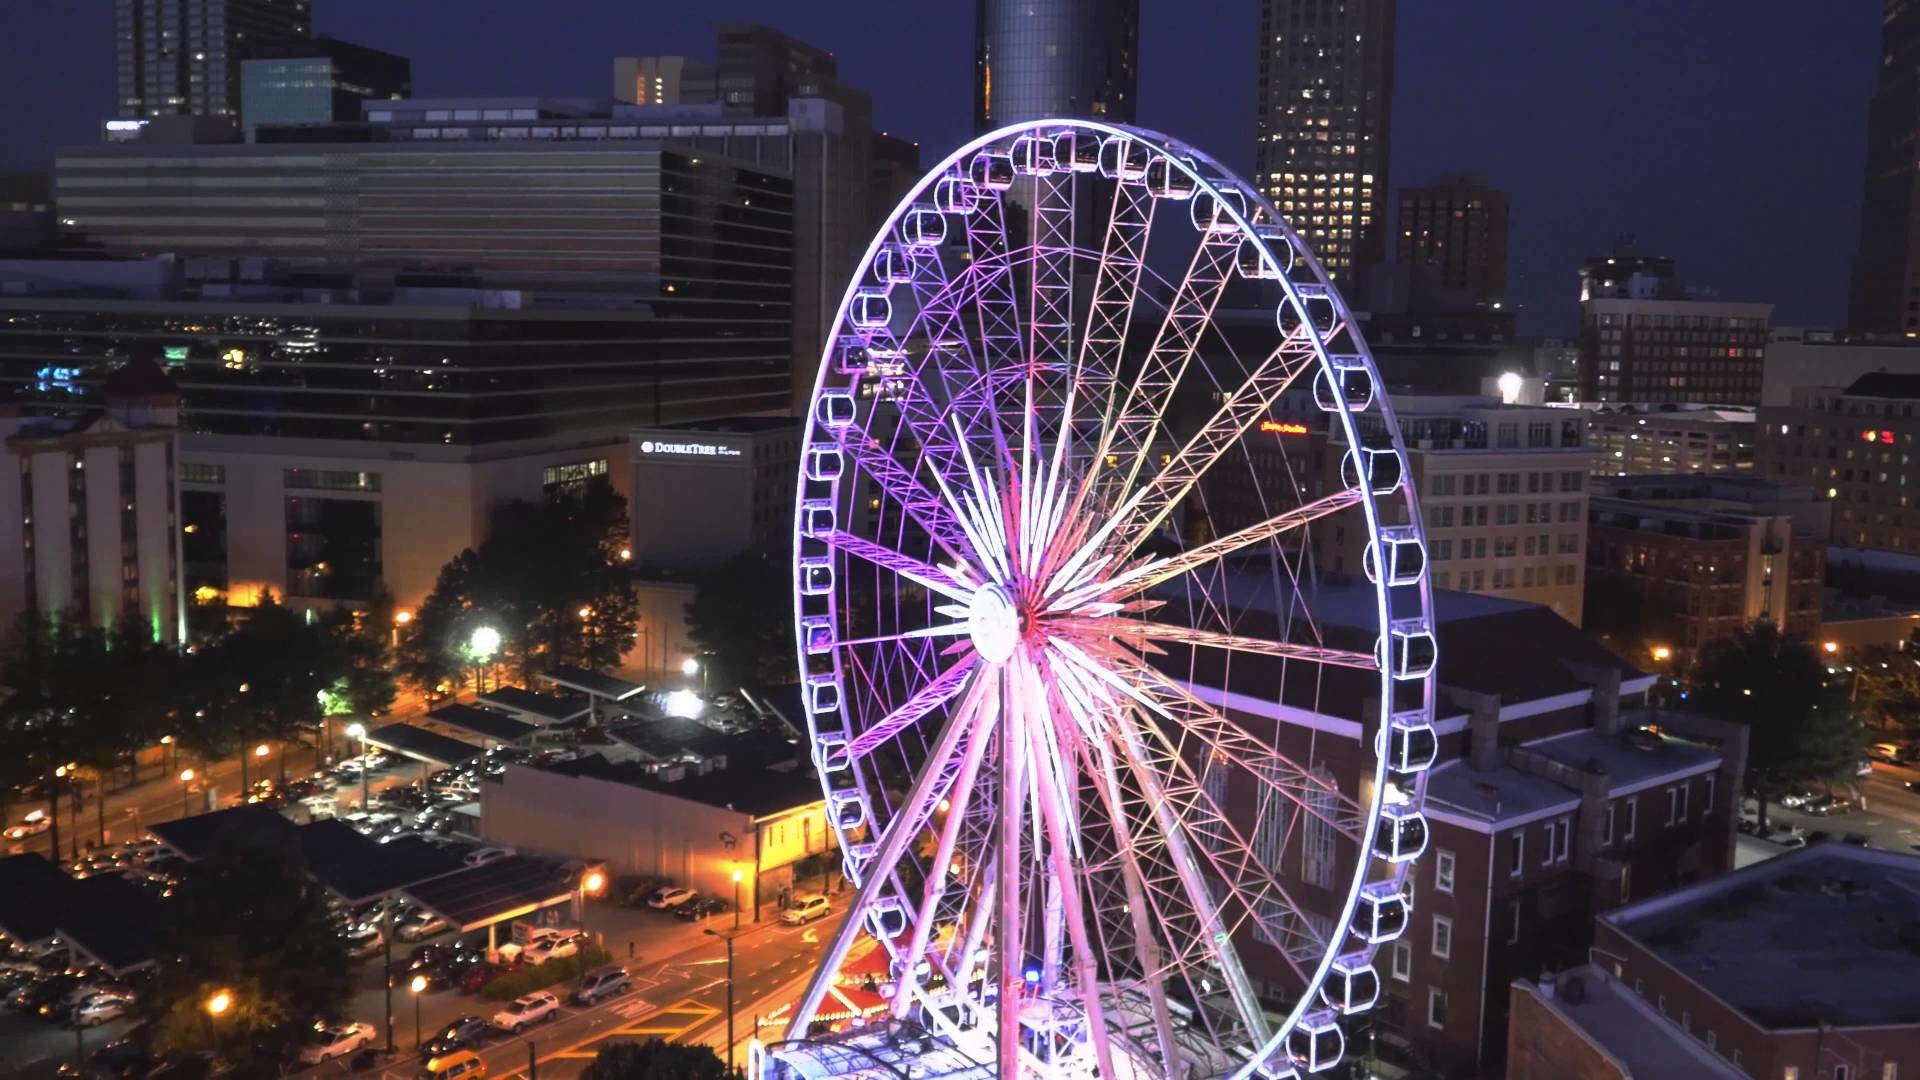 1920x1080 Park Centennial Atlanta Night HD Wallpaper 7 - 1920 X 1080